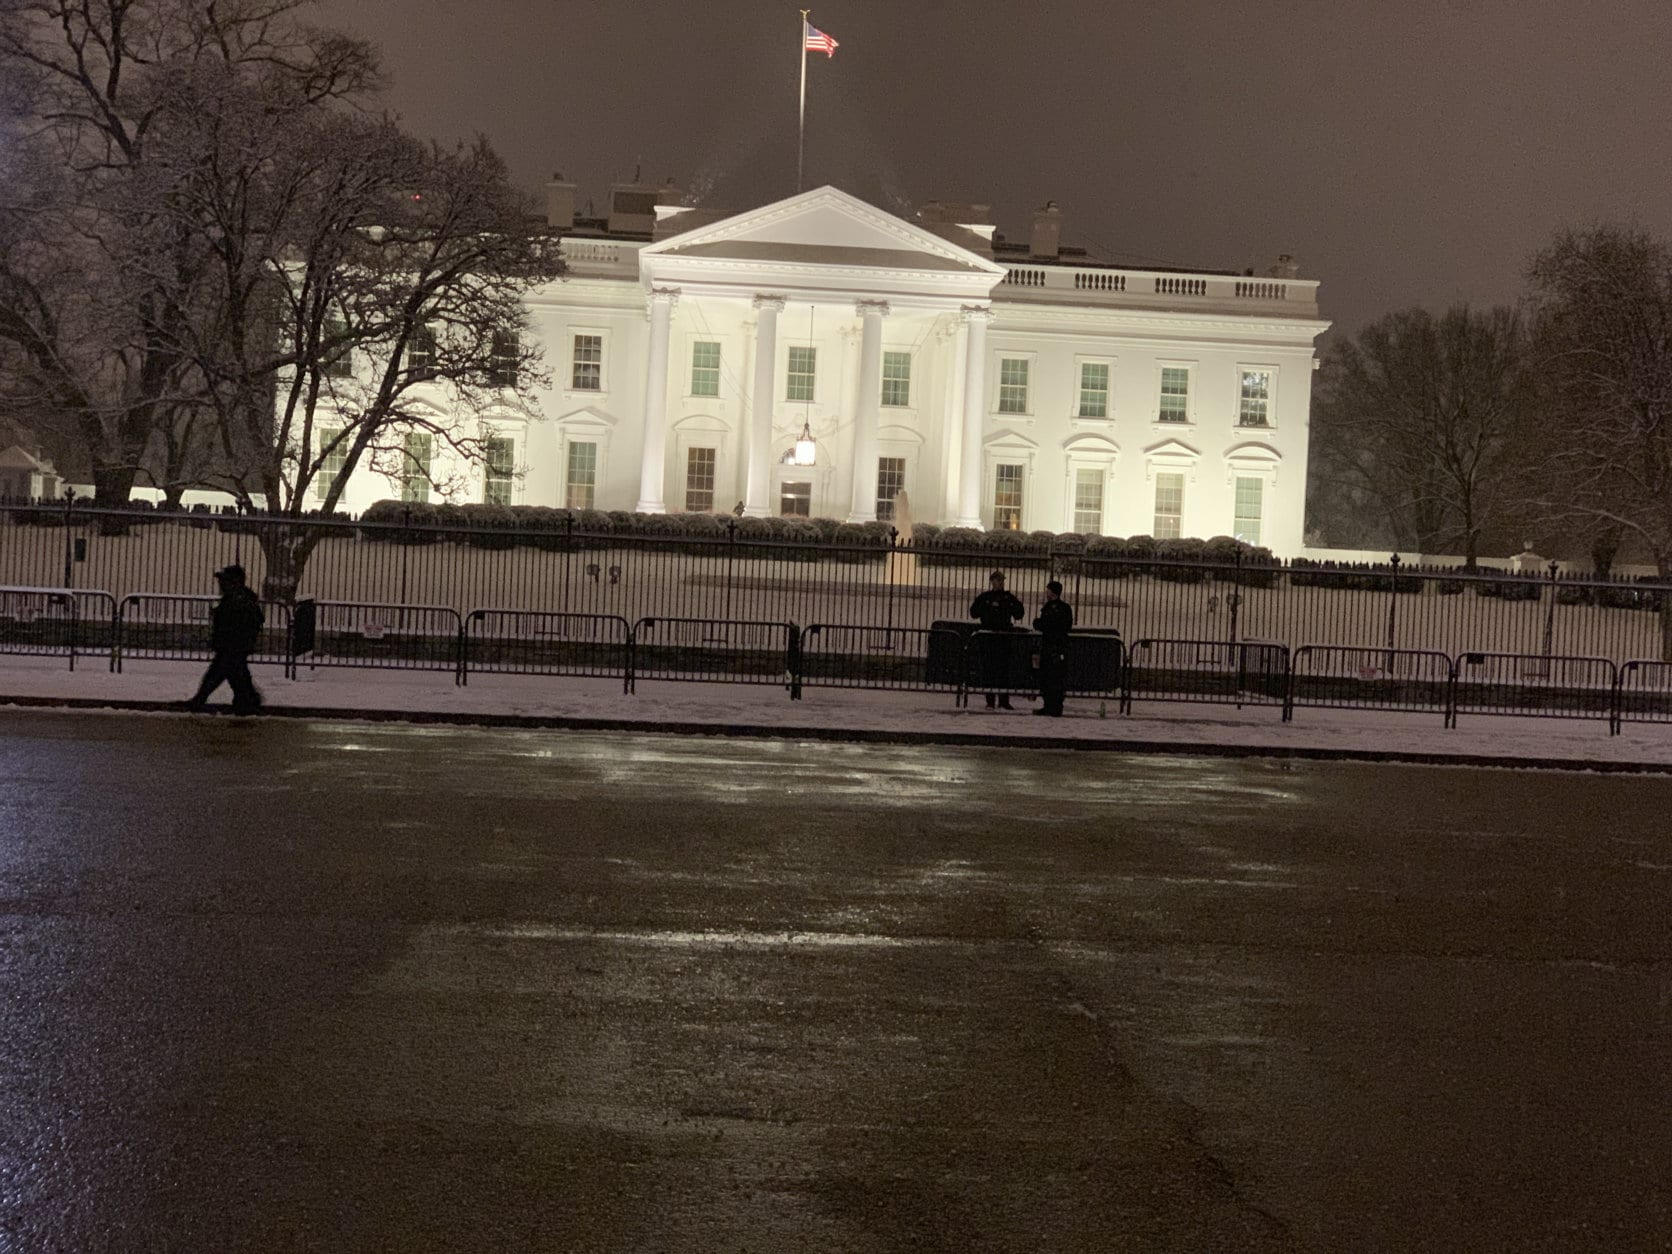 Snow falls outside the White House on Saturday, Jan. 12, 2019. (WTOP/Kyle Cooper)